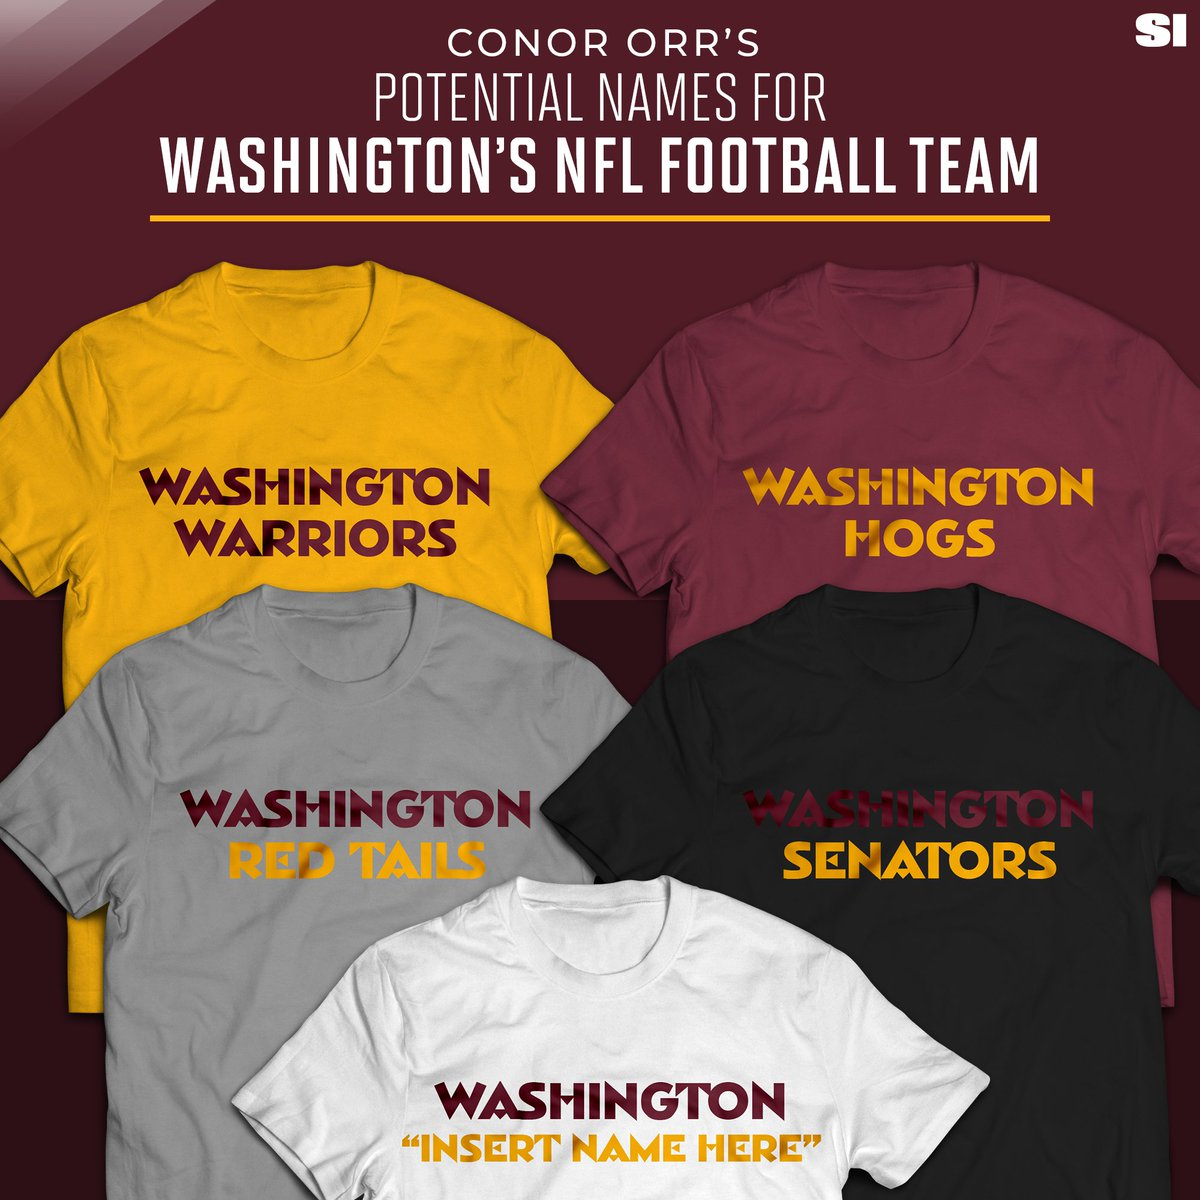 Its time Daniel Snyder moves on from the R nickname. @ConorOrr takes a look at some new names for Washington. What do you think the teams new name should be? 🤔 trib.al/l8YDIdy